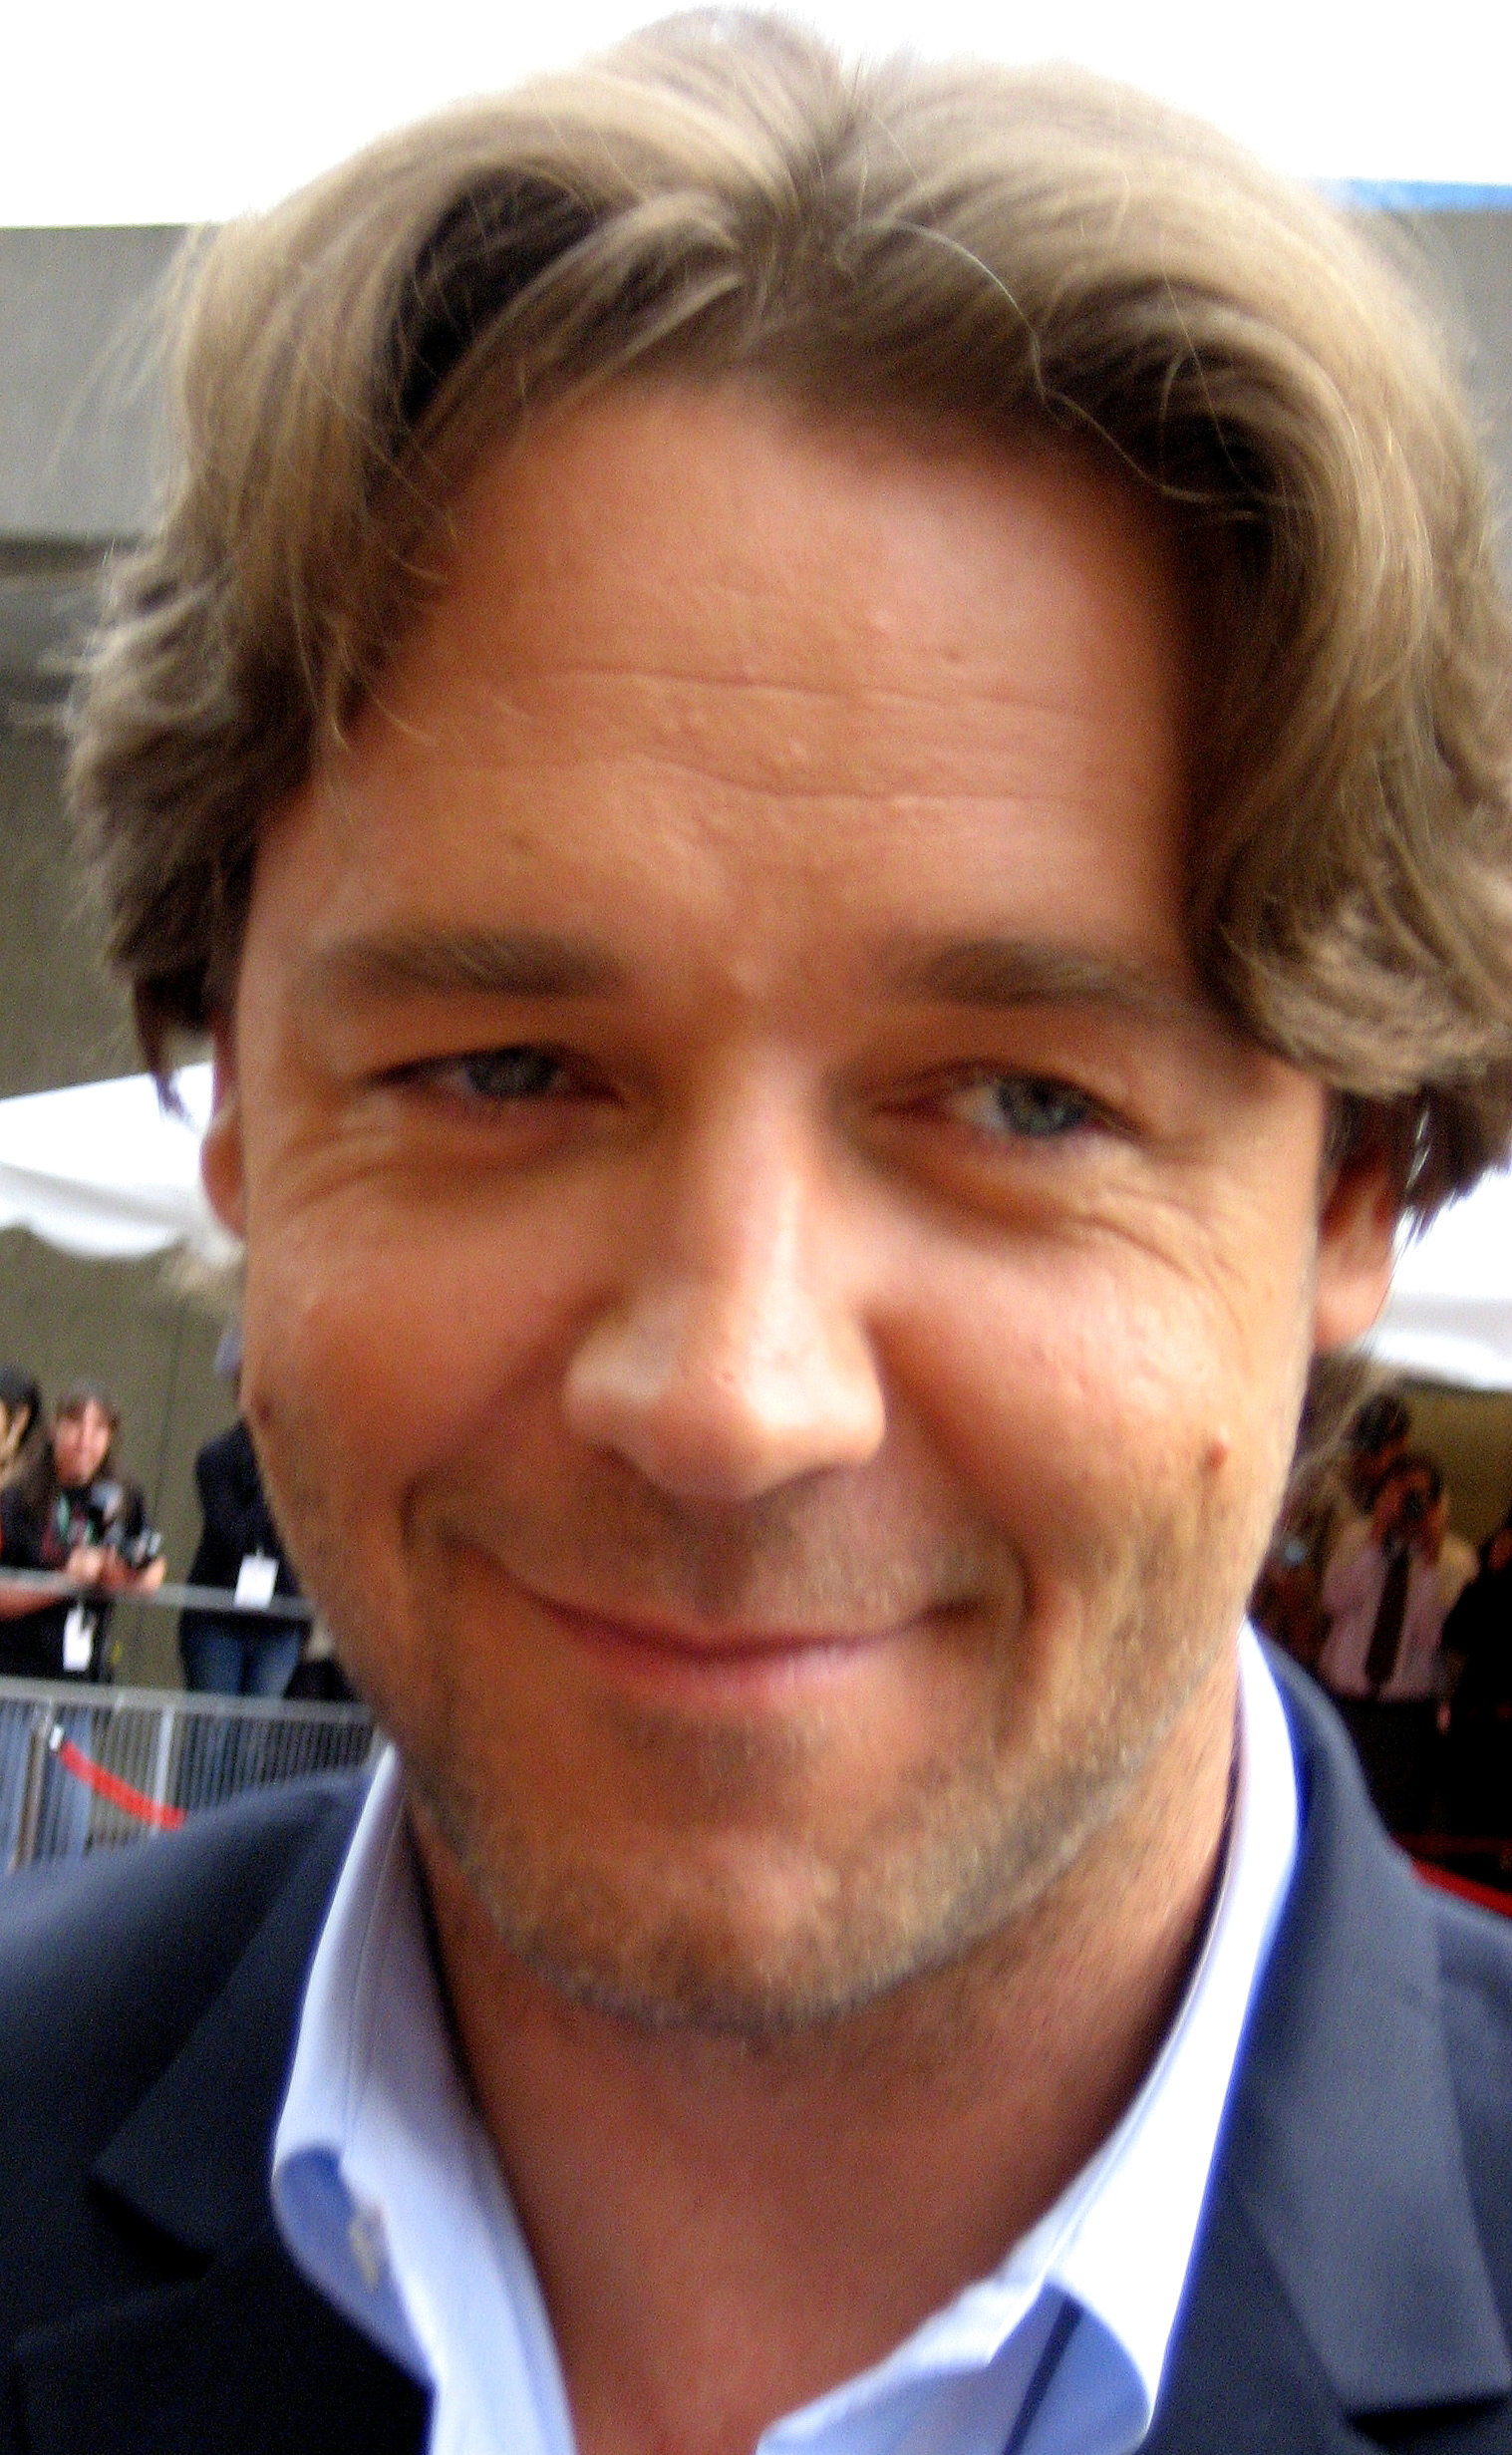 Russell Crowe photo #106668, Russell Crowe image